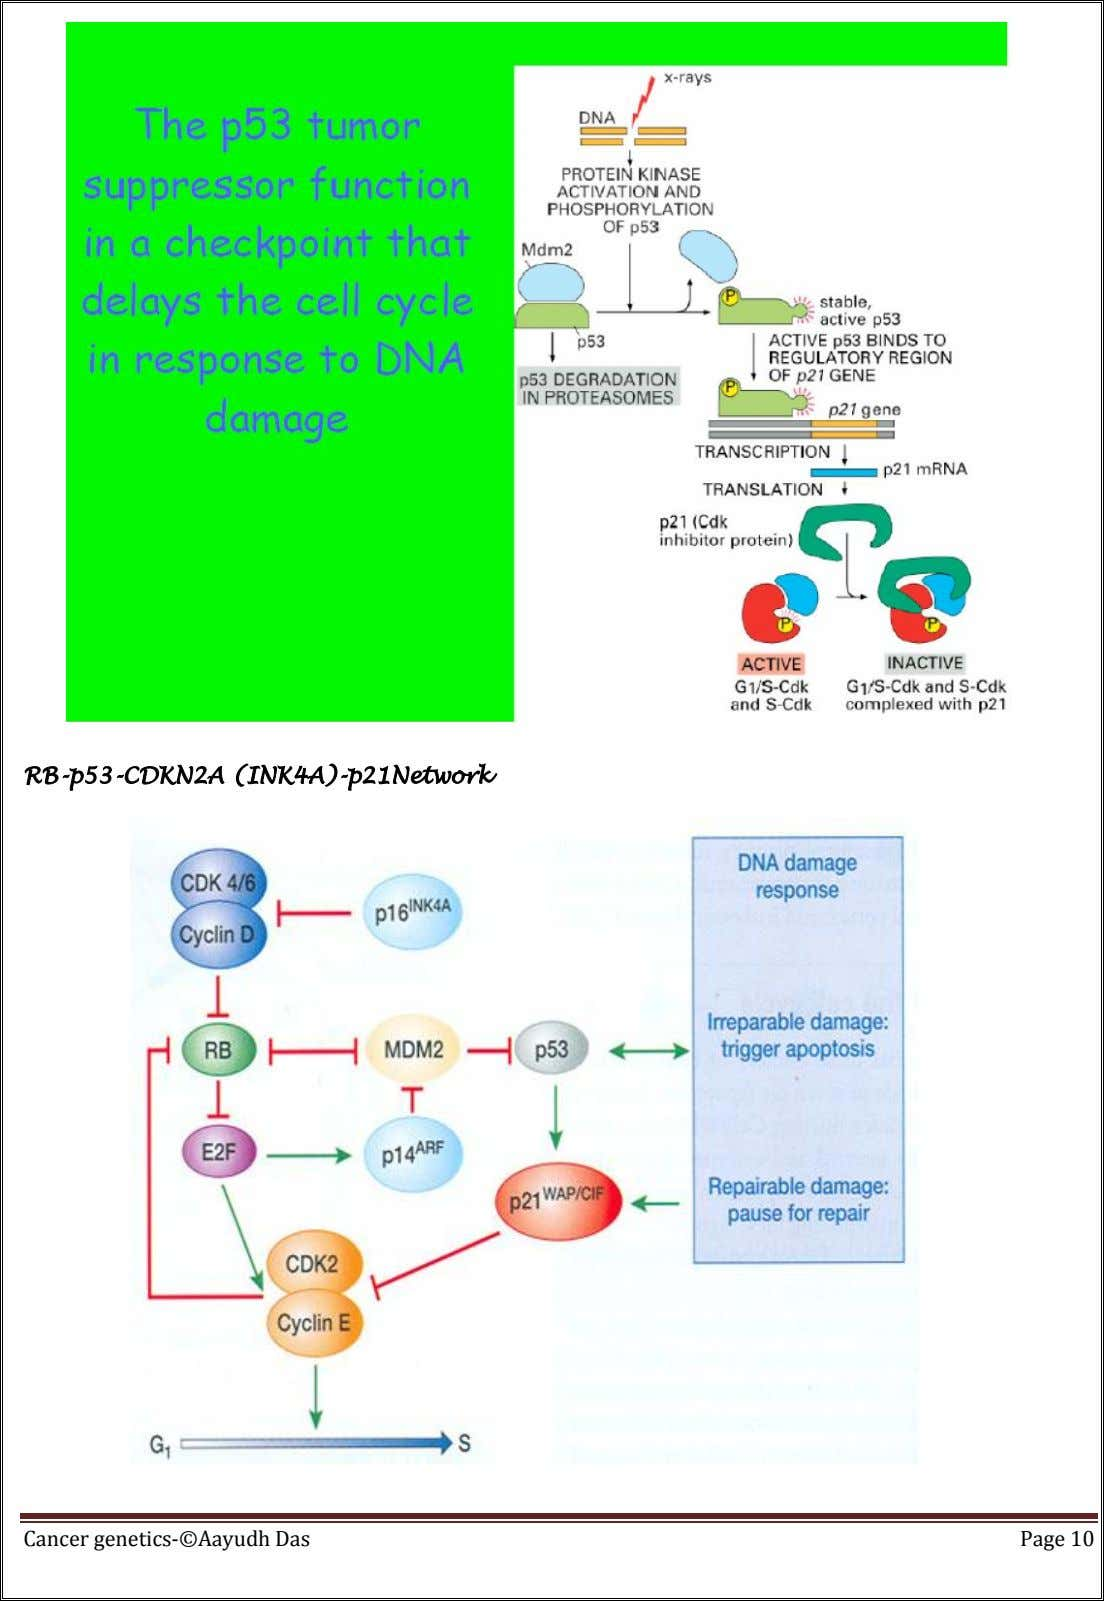 RB-p53-CDKN2A (INK4A)-p21Network Cancer genetics-©Aayudh Das Page 10